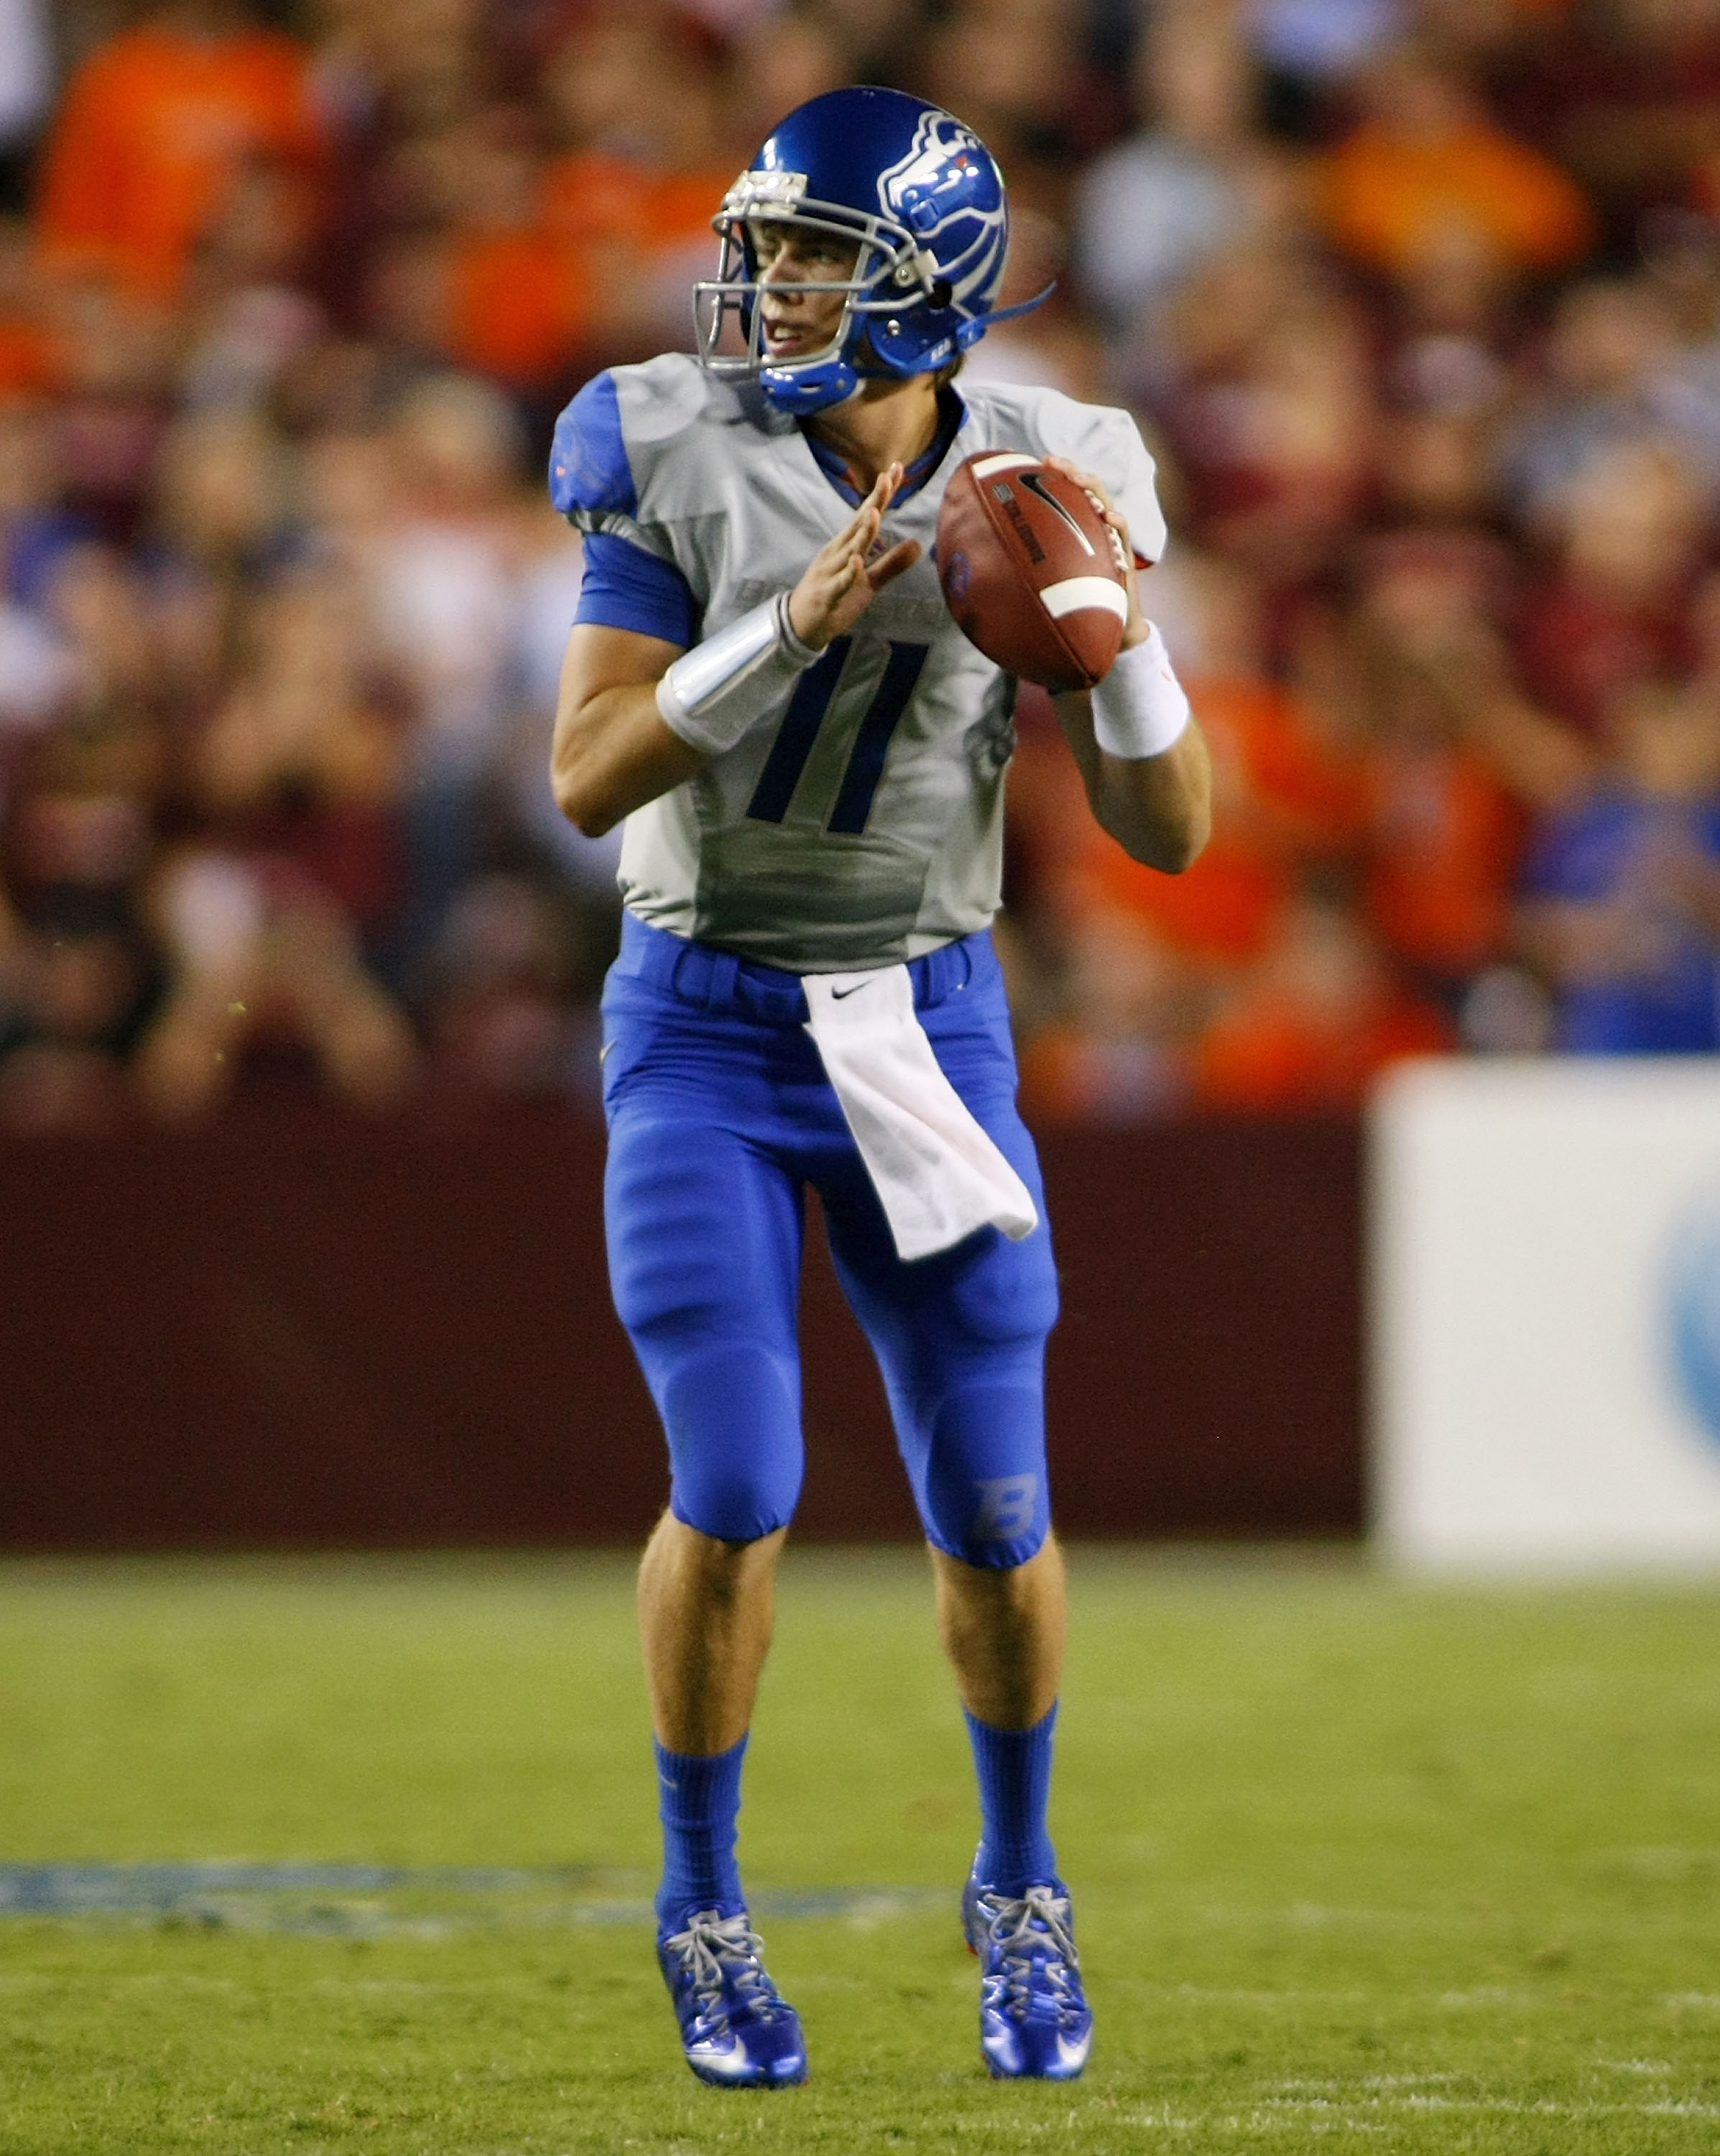 LANDOVER, MD - SEPTEMBER 06:  Quarterback Kellen Moore #11 of the Boise State Broncos looks to pass against the Virginia Tech Hokies at FedExField on September 6, 2010 in Landover, Maryland.  (Photo by Geoff Burke/Getty Images)